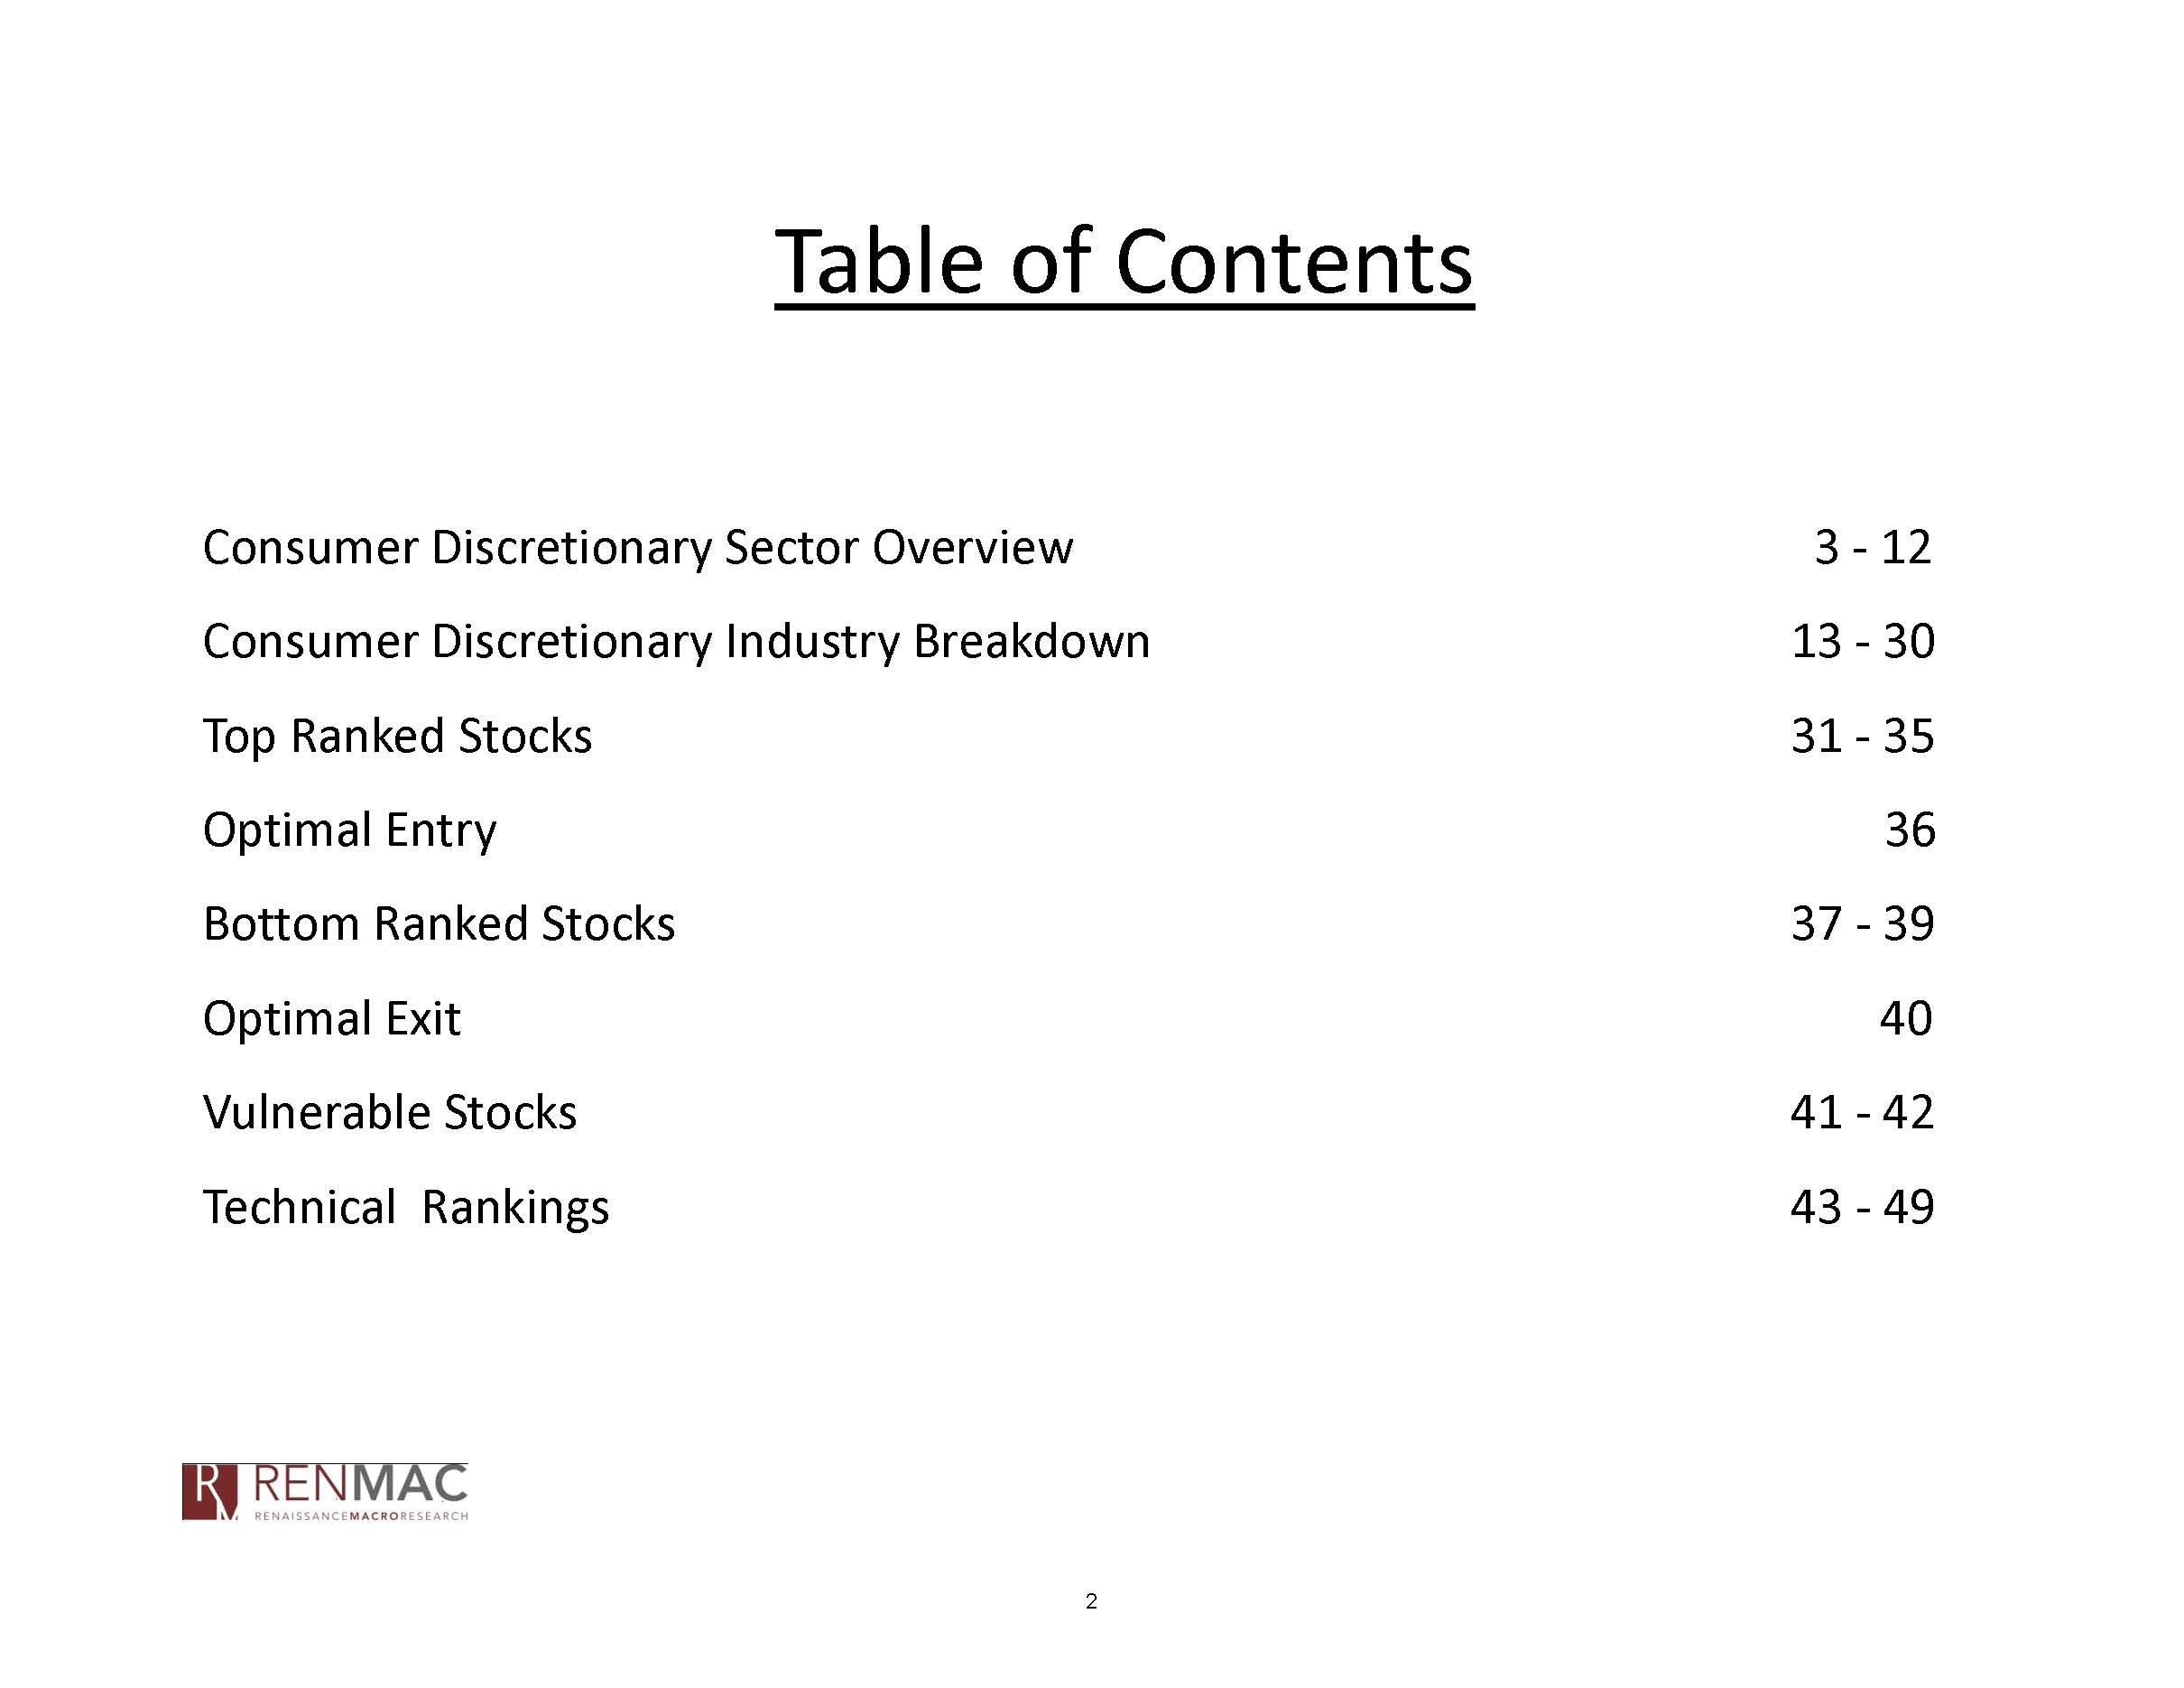 Consumer Discretionary Deep-Dive 07.12.12_Page_02